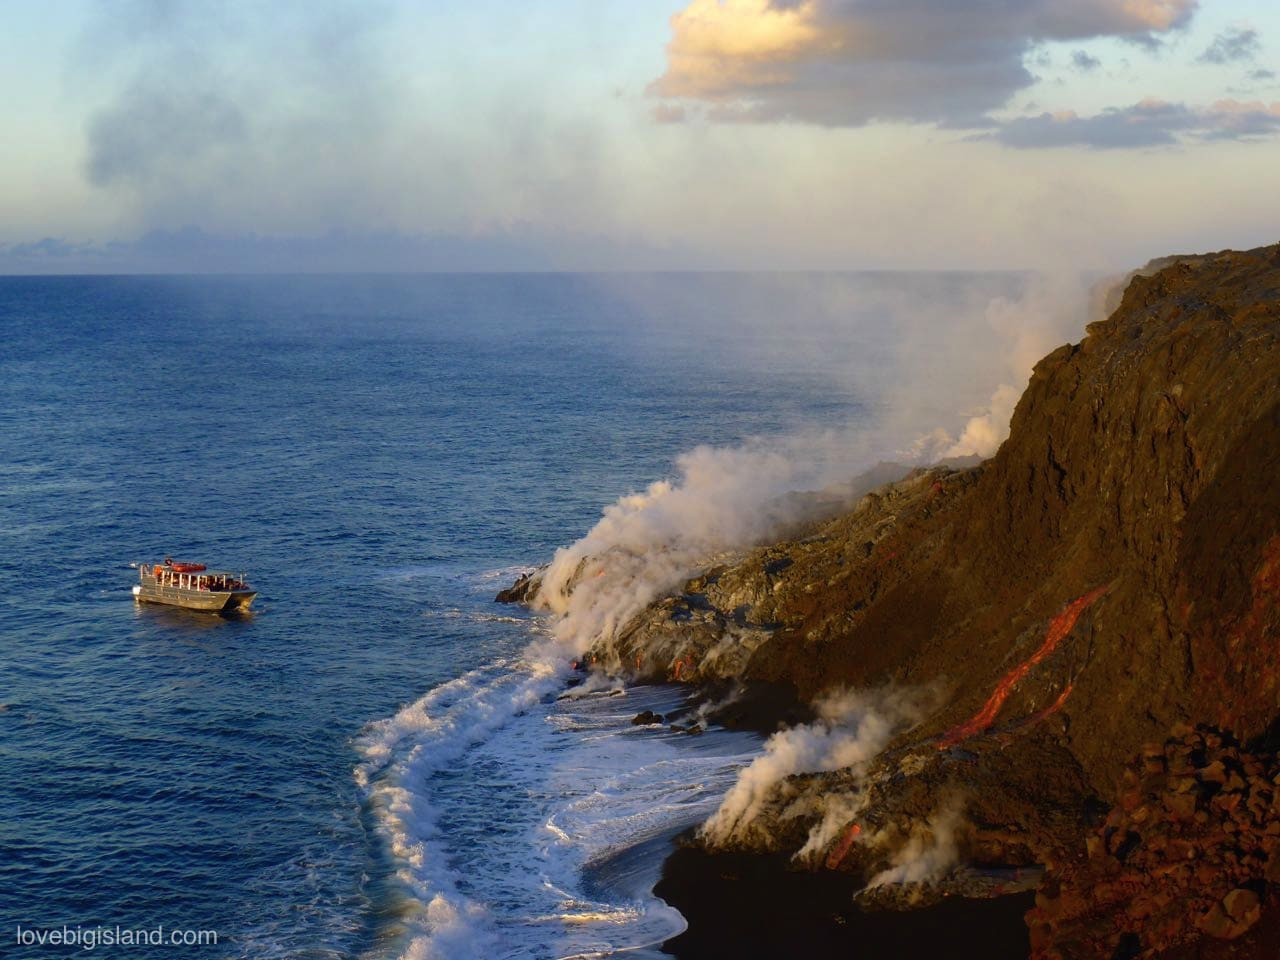 Big Island Outdoor Activities: 20+ Things to do in Hawaii